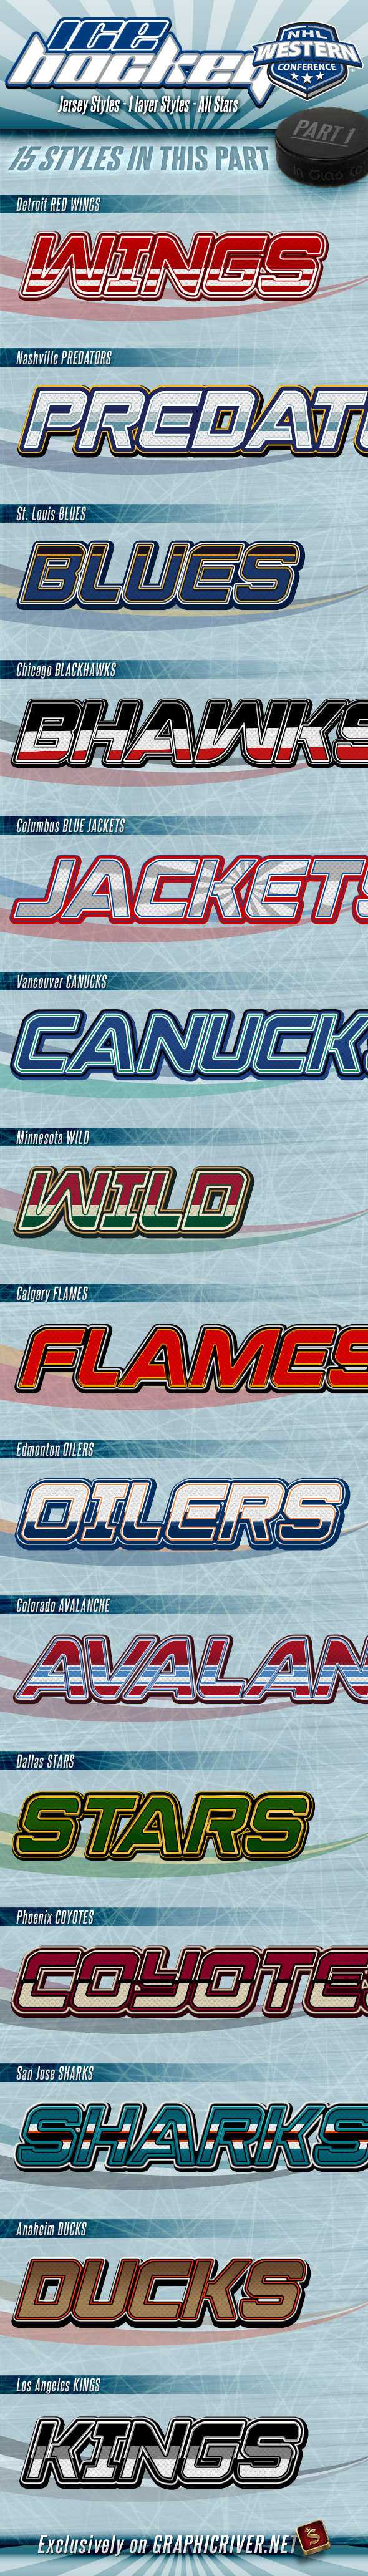 NHL Hockey Jersey Styles - Part 1 - Text Effects Styles